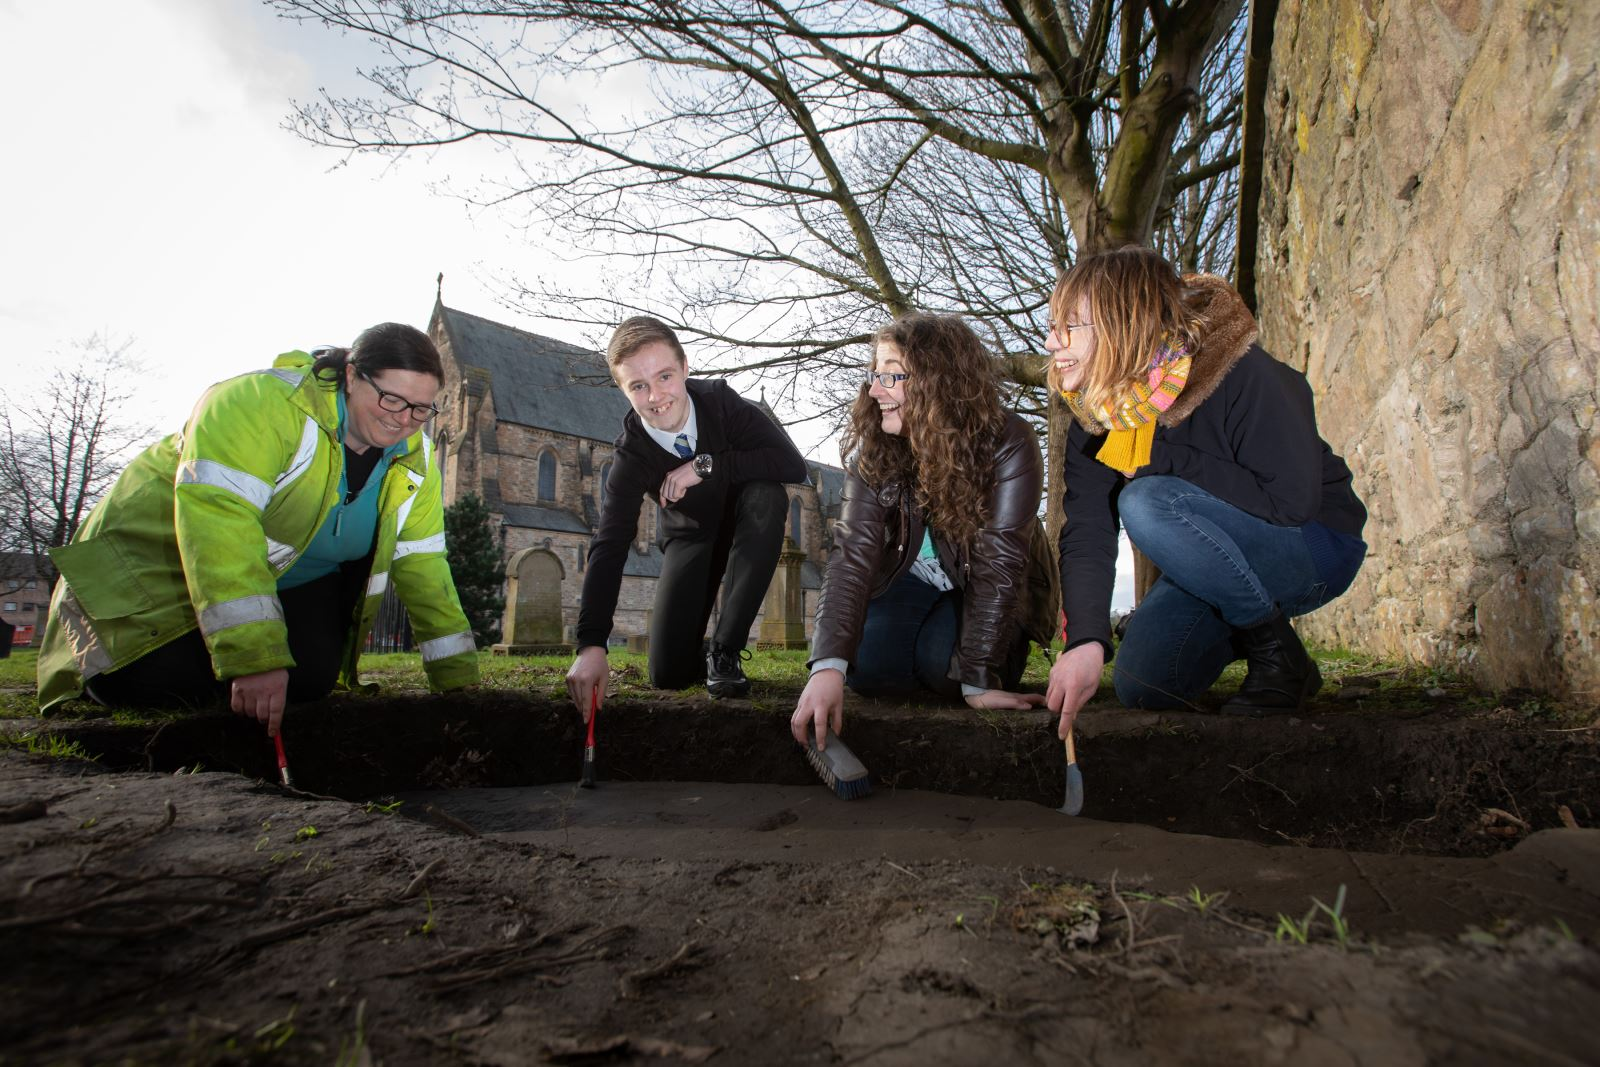 Nicola Reid, Field Archaeolgist, Northlight Heritage; Mark McGettigan, aged 14; Megan Kasten, Project Office & Volunteer, Northlight Heritage and Ingrid Shearer, Community Engagement Officer for Stones & Bones excavation, Northlight Heritage examining one of the three Govan Stones rediscovered at Govan Old Parish Church